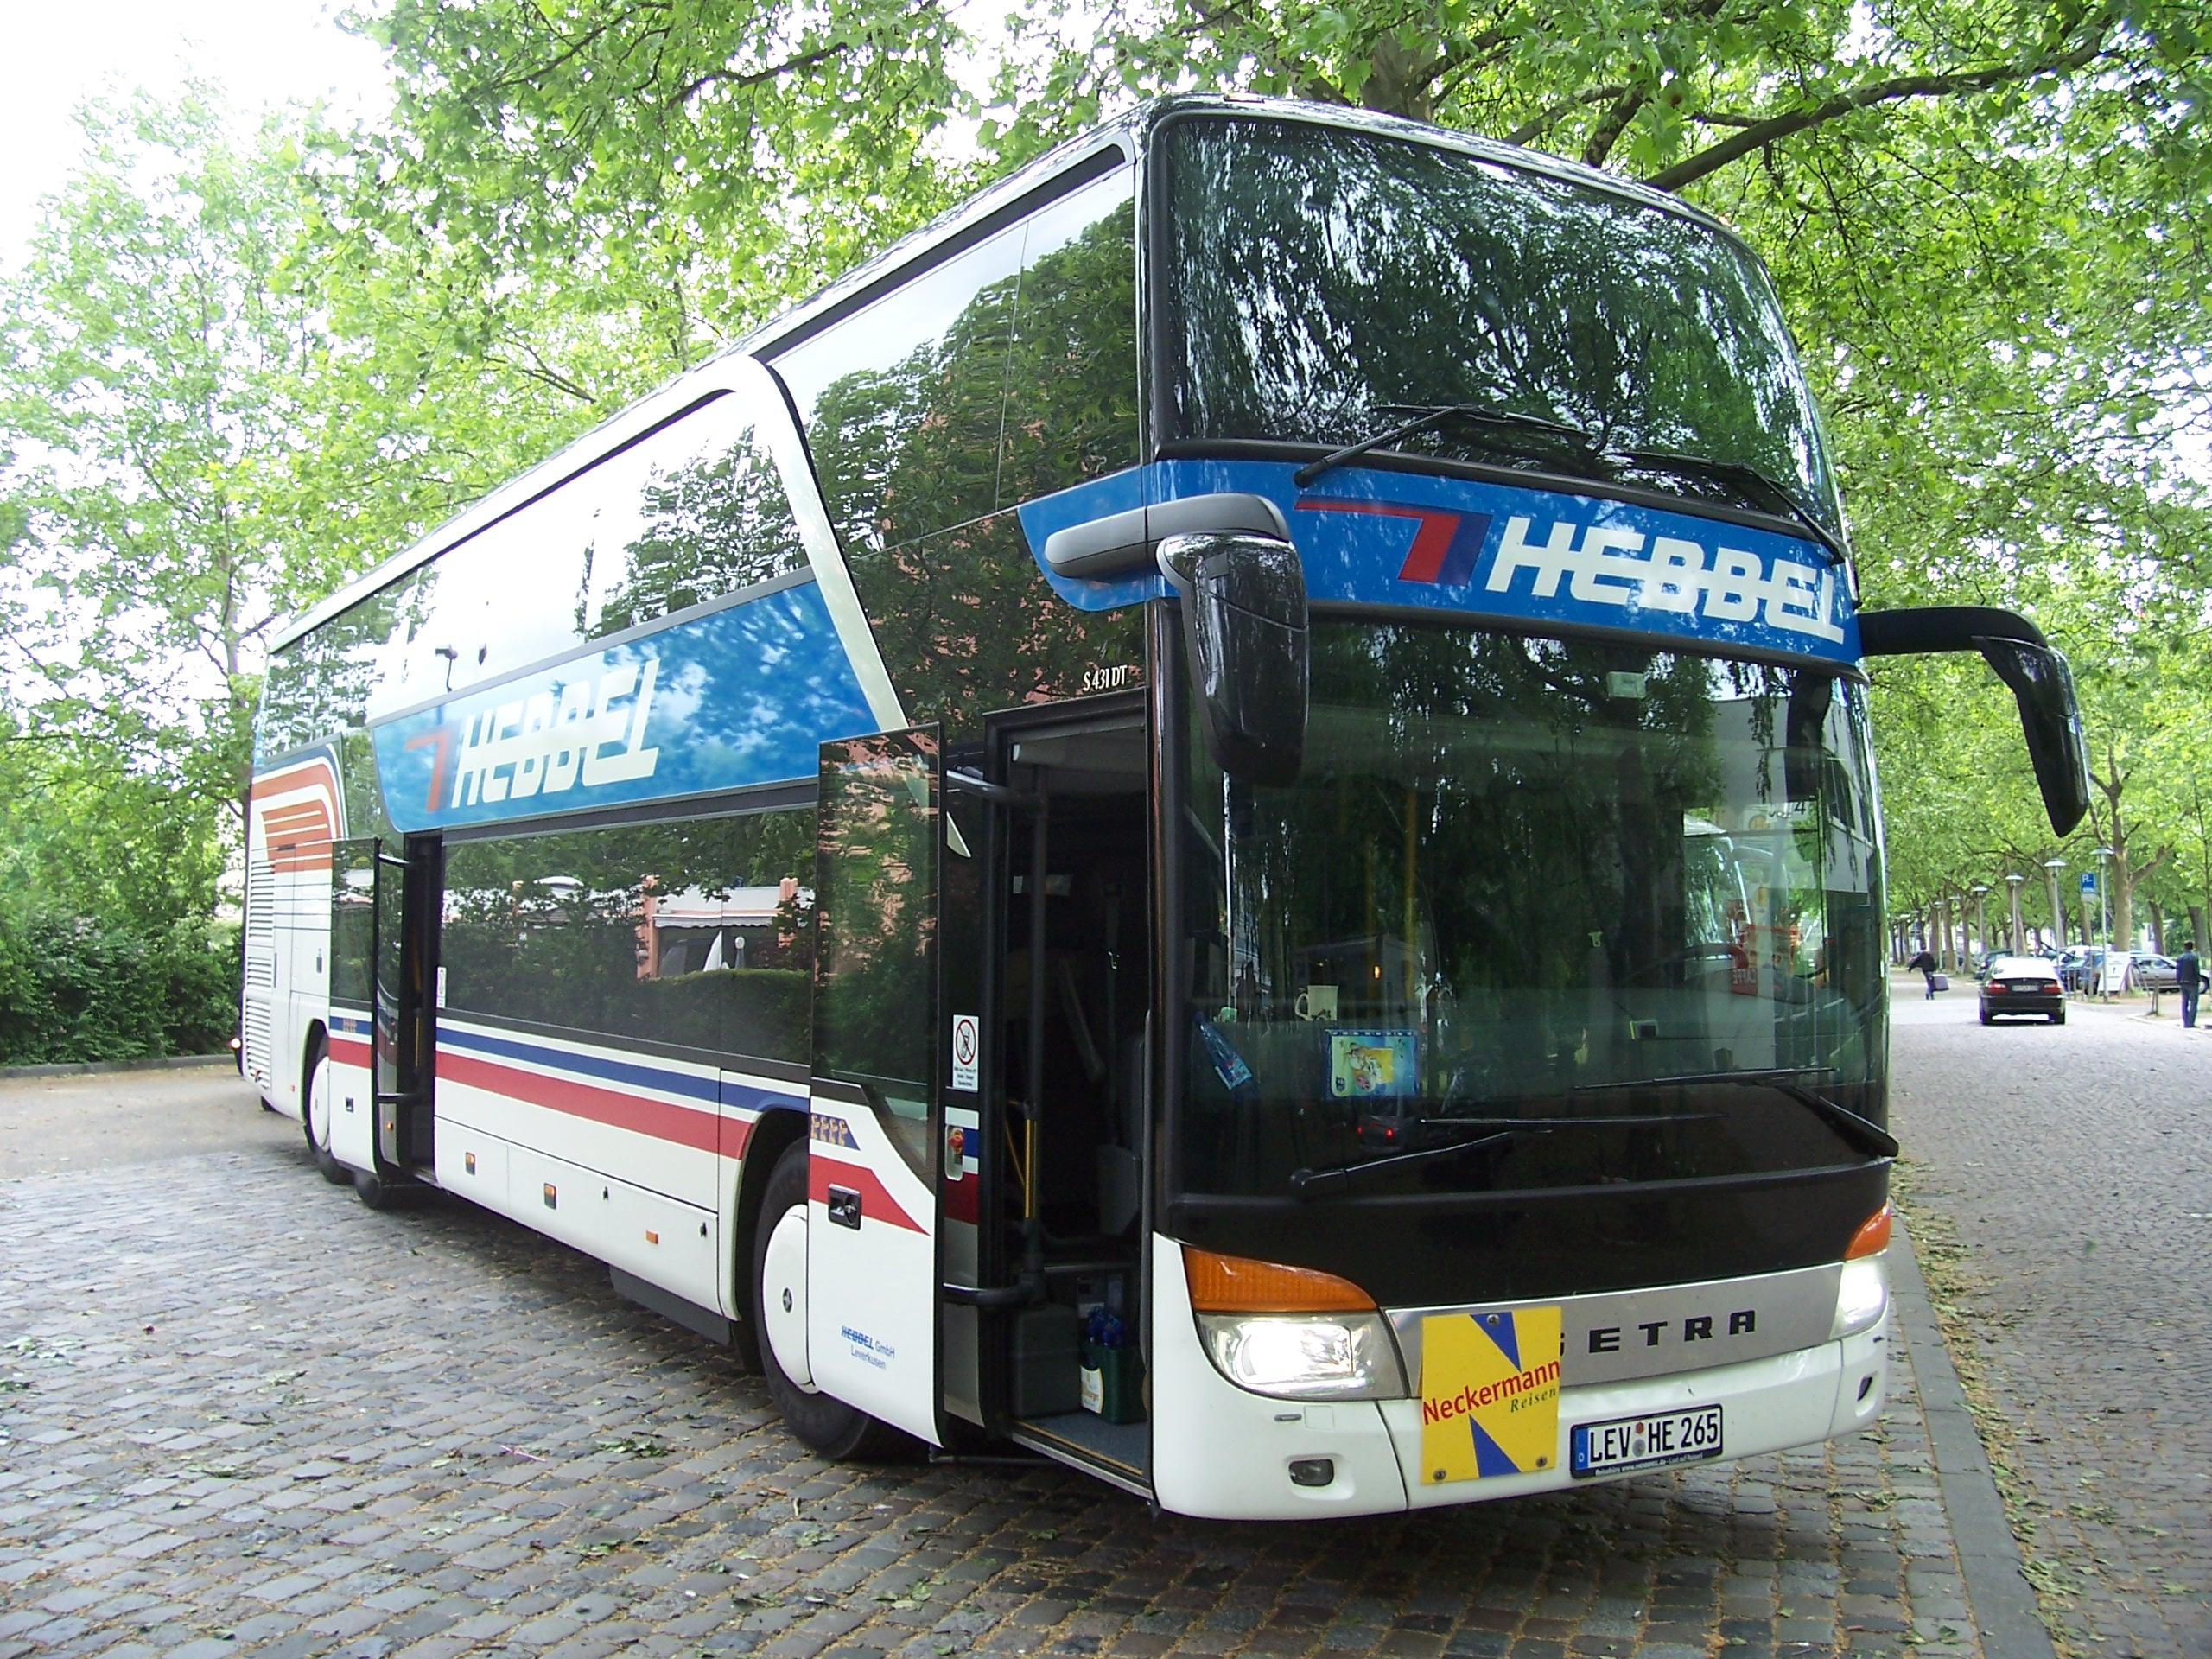 File:Setra S 431 DT Mannheim 100 5554.jpg - Wikimedia Commons